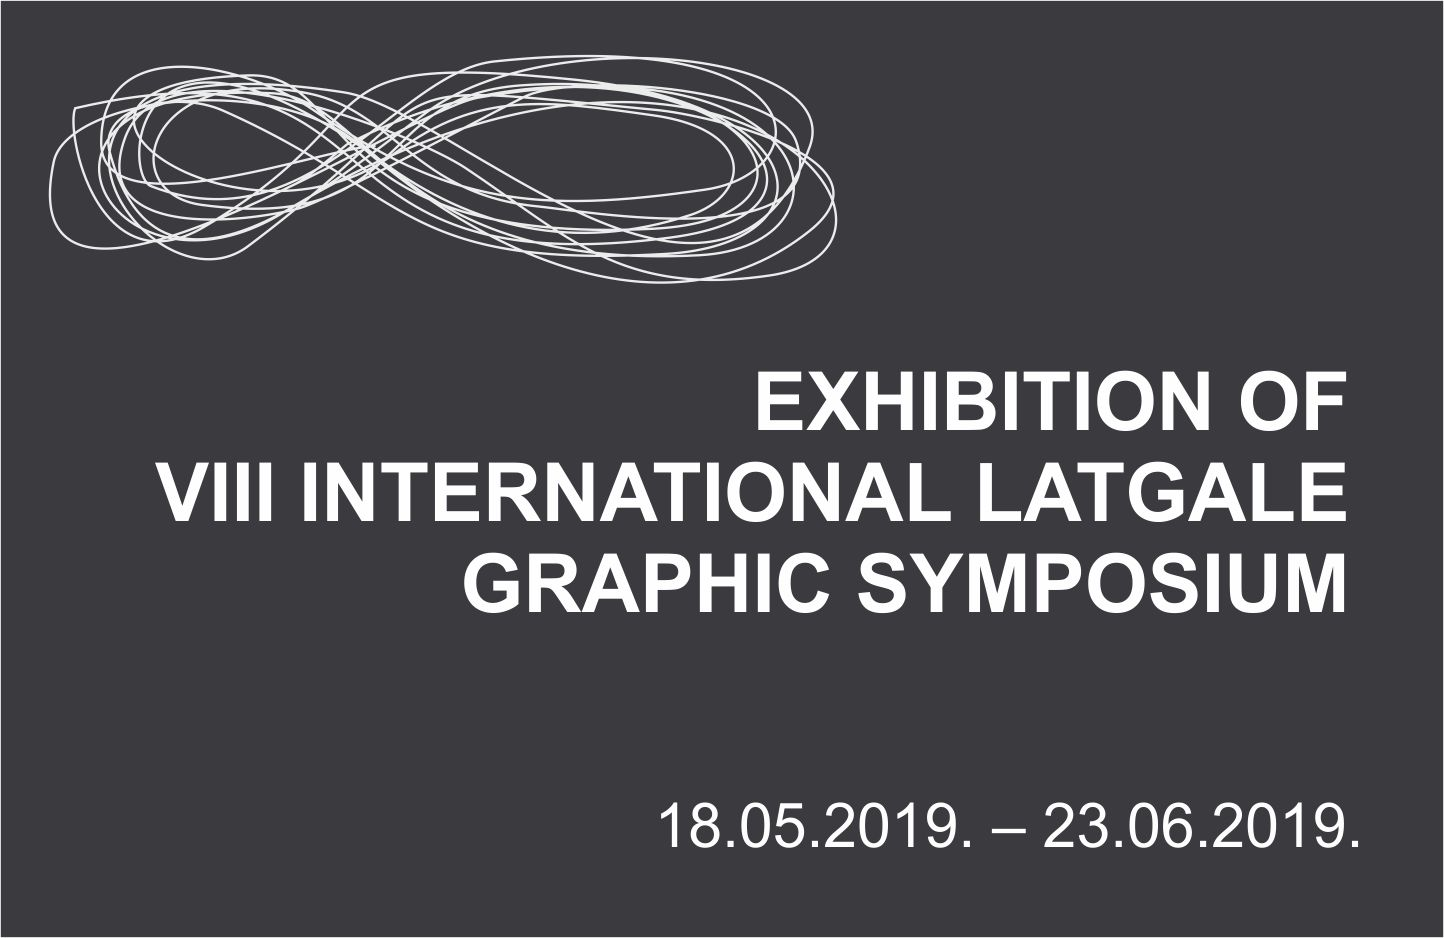 EXHIBITION OF VIII INTERNATIONAL LATGALE GRAPHIC SYMPOSIUM